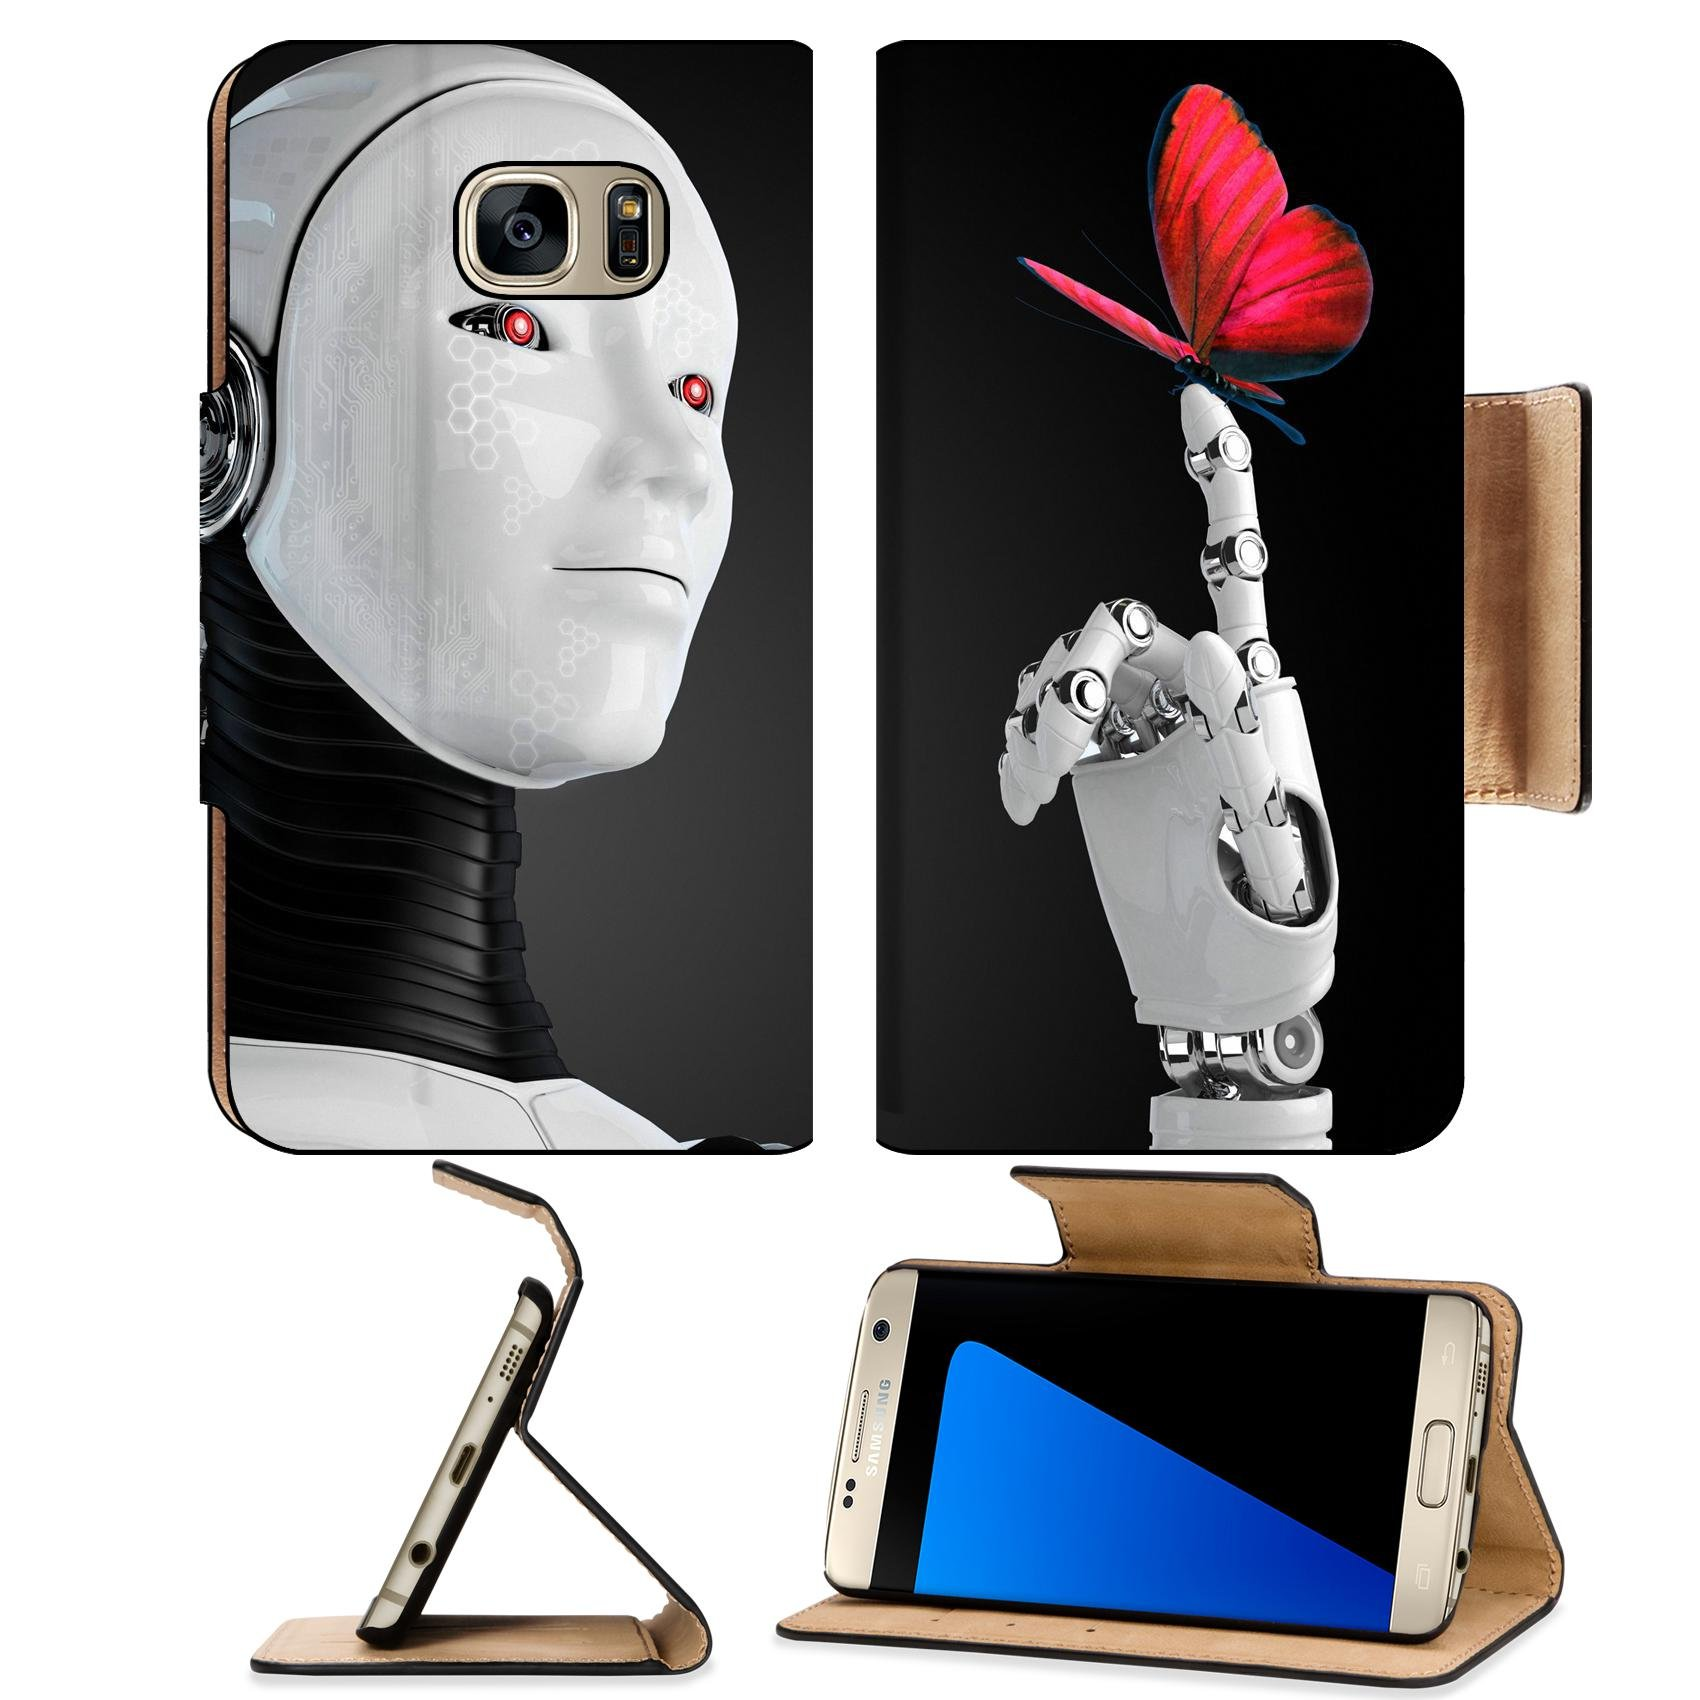 Luxlady Premium Samsung Galaxy S7 Edge Flip Pu Wallet Case IMAGE ID: 23425686 robot android woman with butterfly